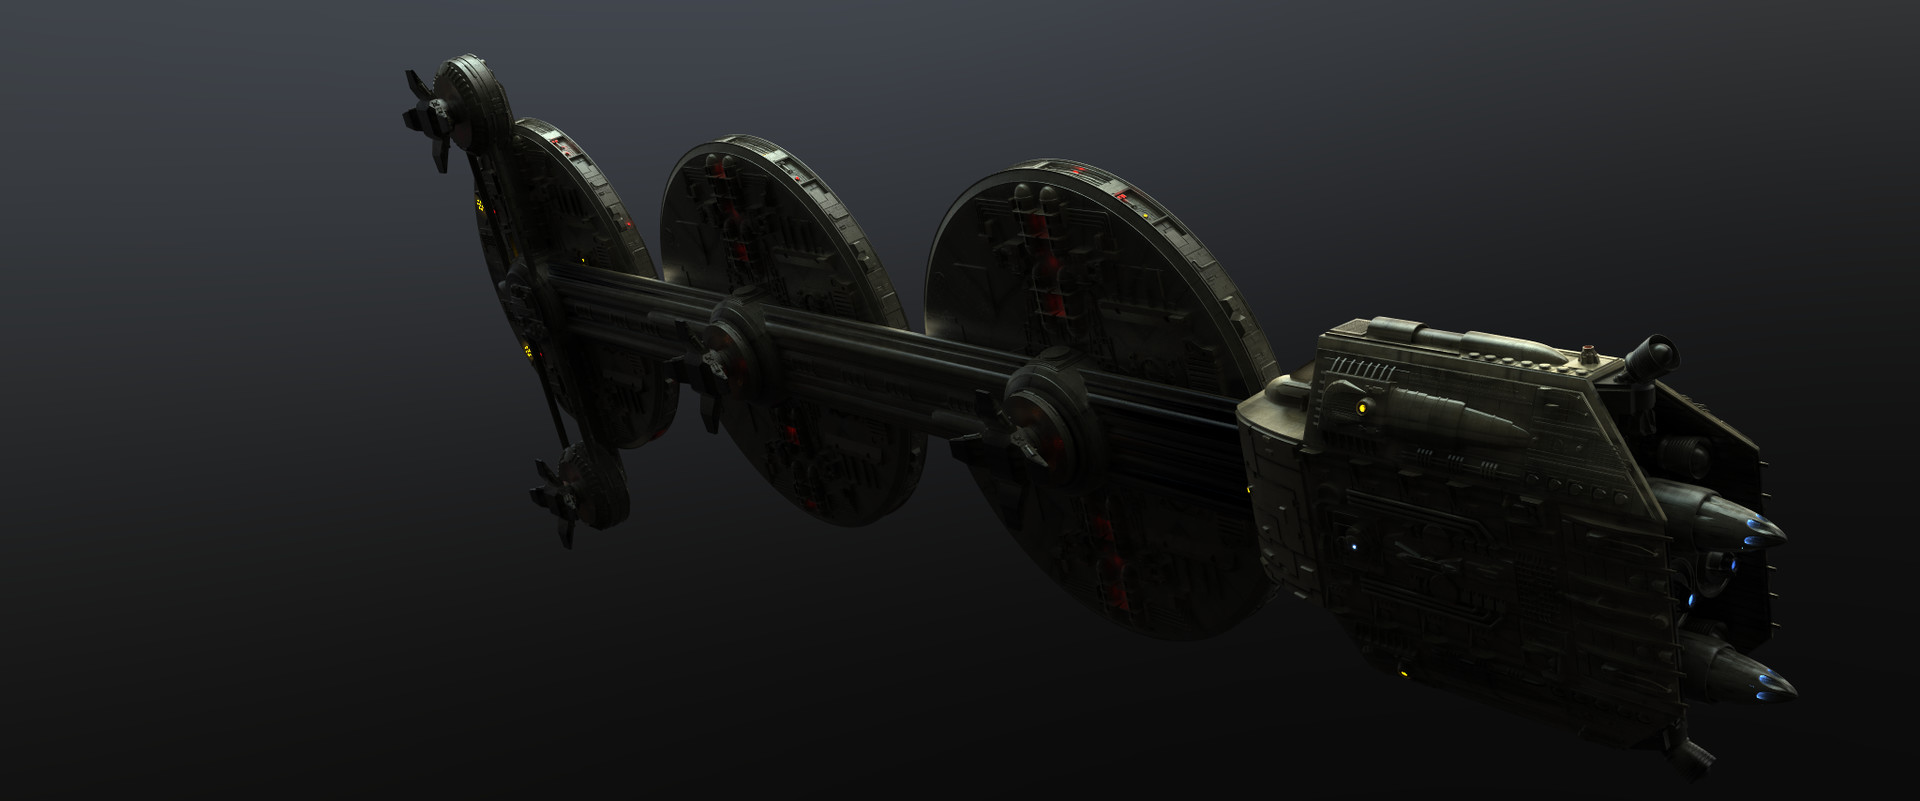 Mineral Ship Test Render. (Co-Modeled by Wes Chilton and Myself)